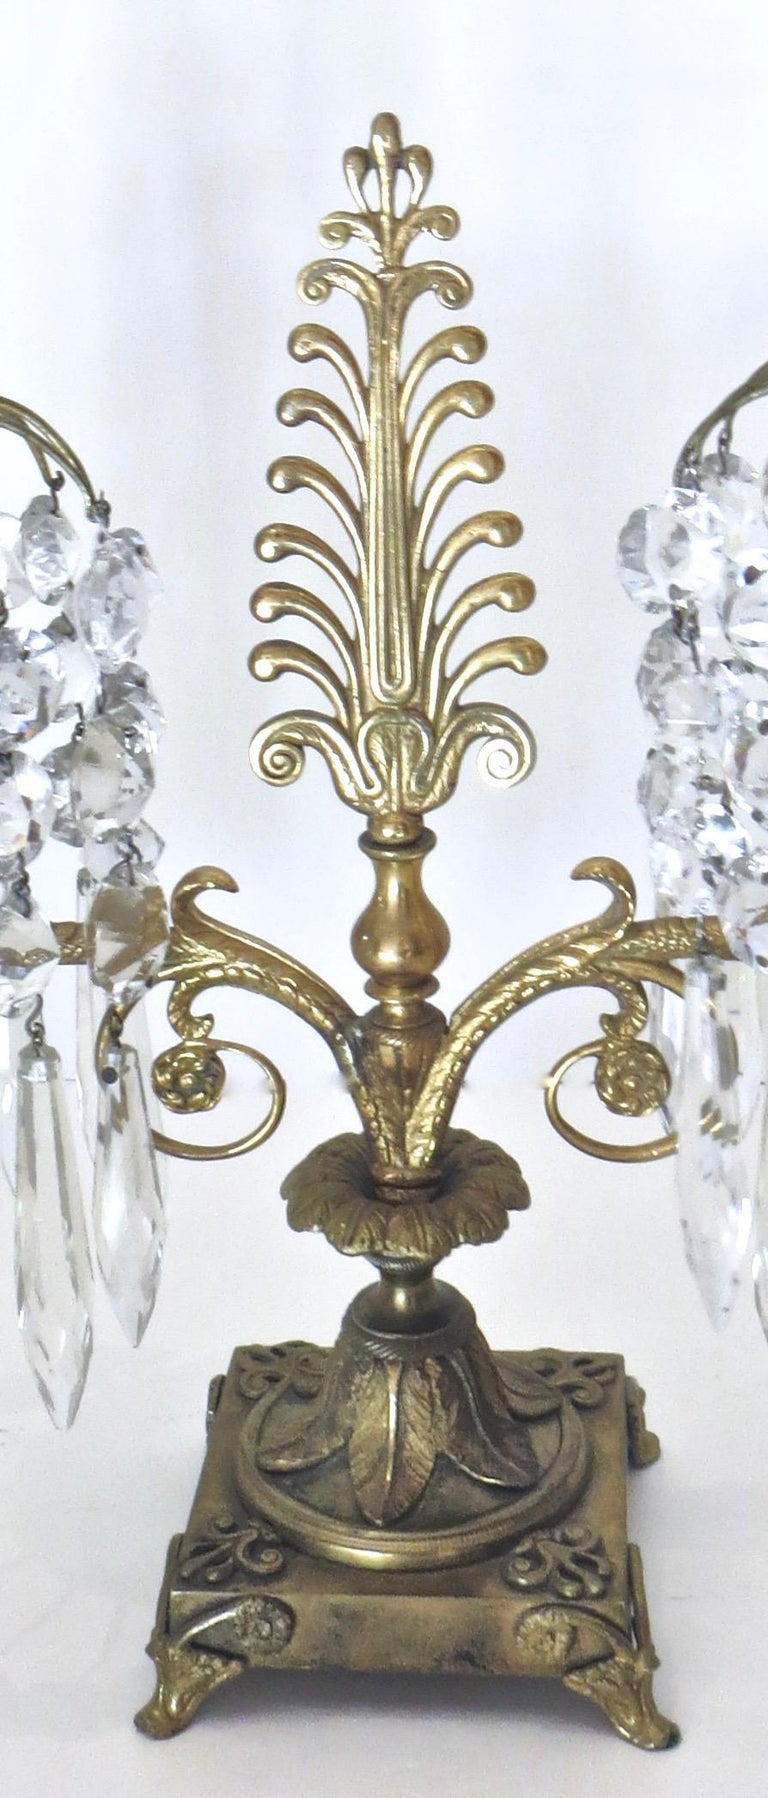 19th Century Pair of Regency Cut-Glass and Gilt-Metal Two Light Candelabras, circa 1815 For Sale